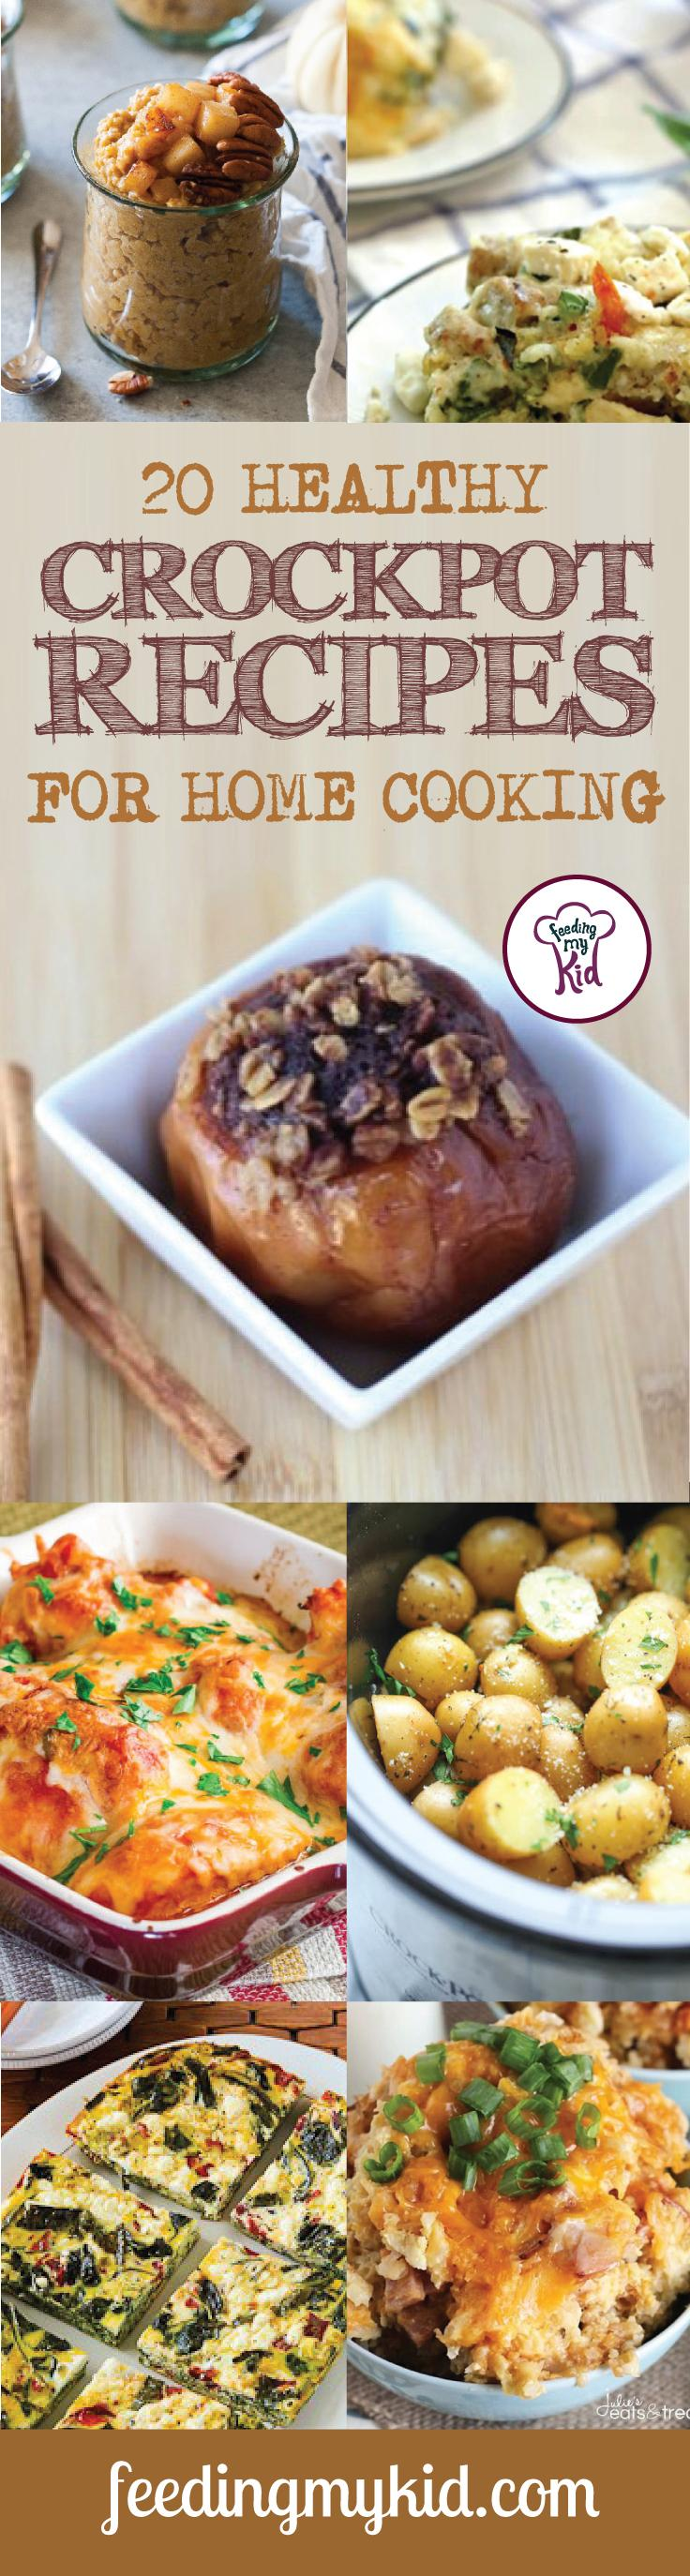 20 Healthy Crockpot Recipes for Home Cooking - These are a must share and must pin! Easy to cook, timely to make and great to eat, these healthy crockpot recipes will make you keep wanting more. From a crockpot pumpkin spice oatmeal recipe to a crockpot healthy sausage mediterranean quiche, these recipes are sure to please even the pickiest of eaters. #fmk #recipes #crockpot